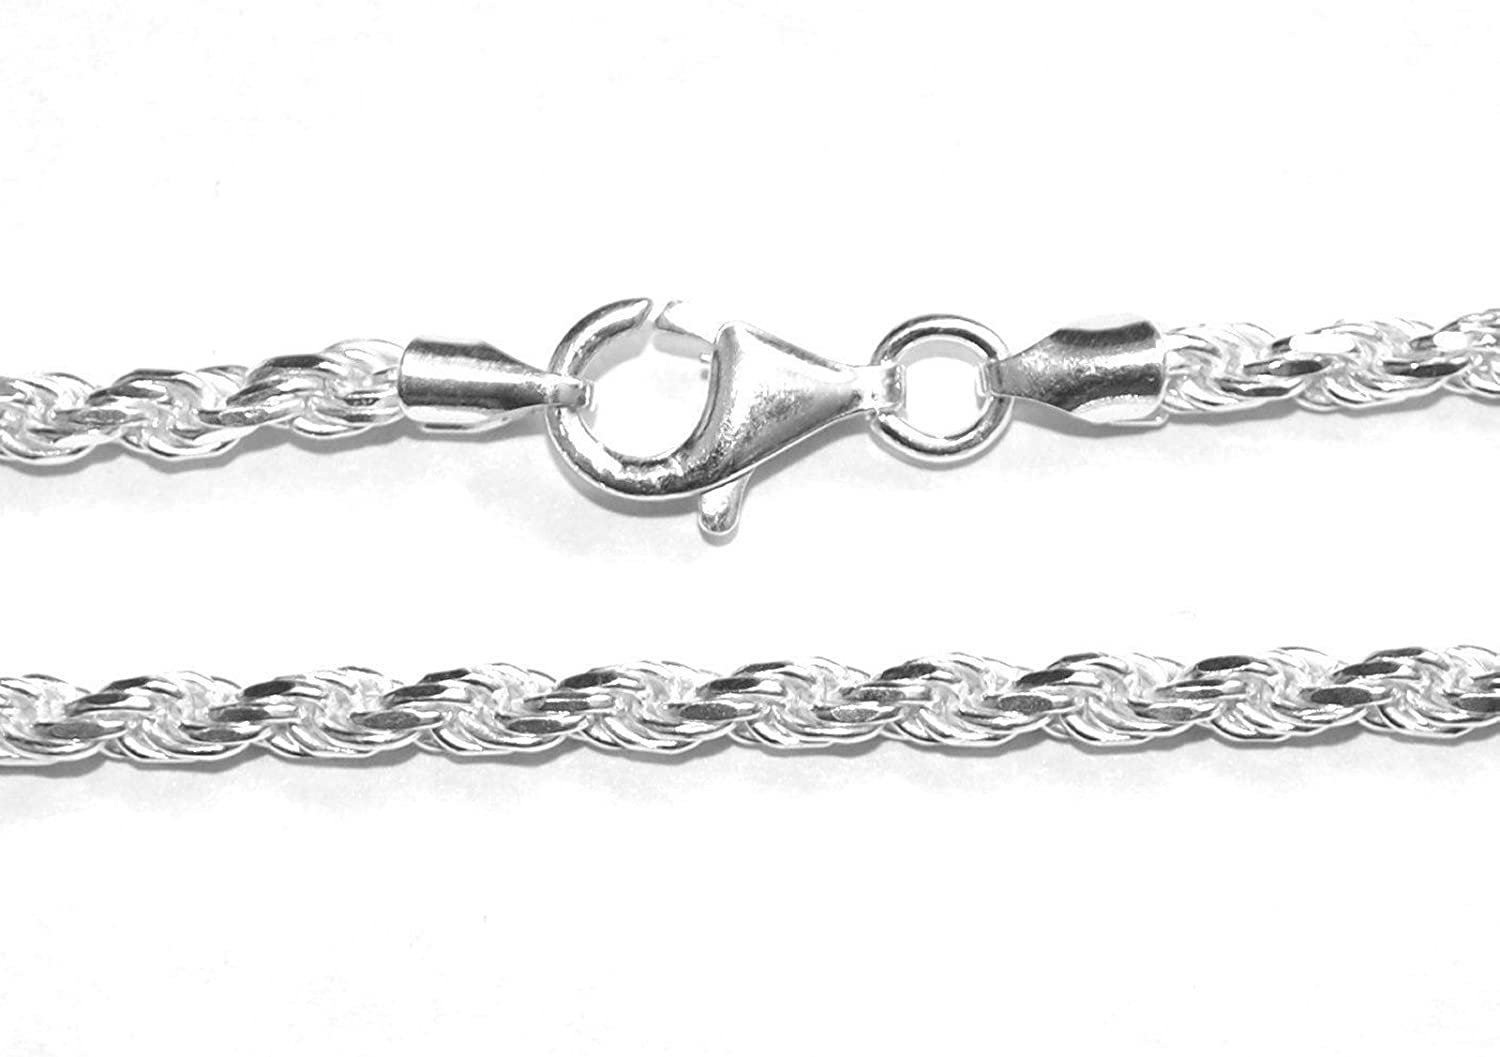 MARKYLIS  REAL SOLID 925 STERLING SILVER CHUNKY ROPE CHAIN NECKLACE  3mm  34inch   34